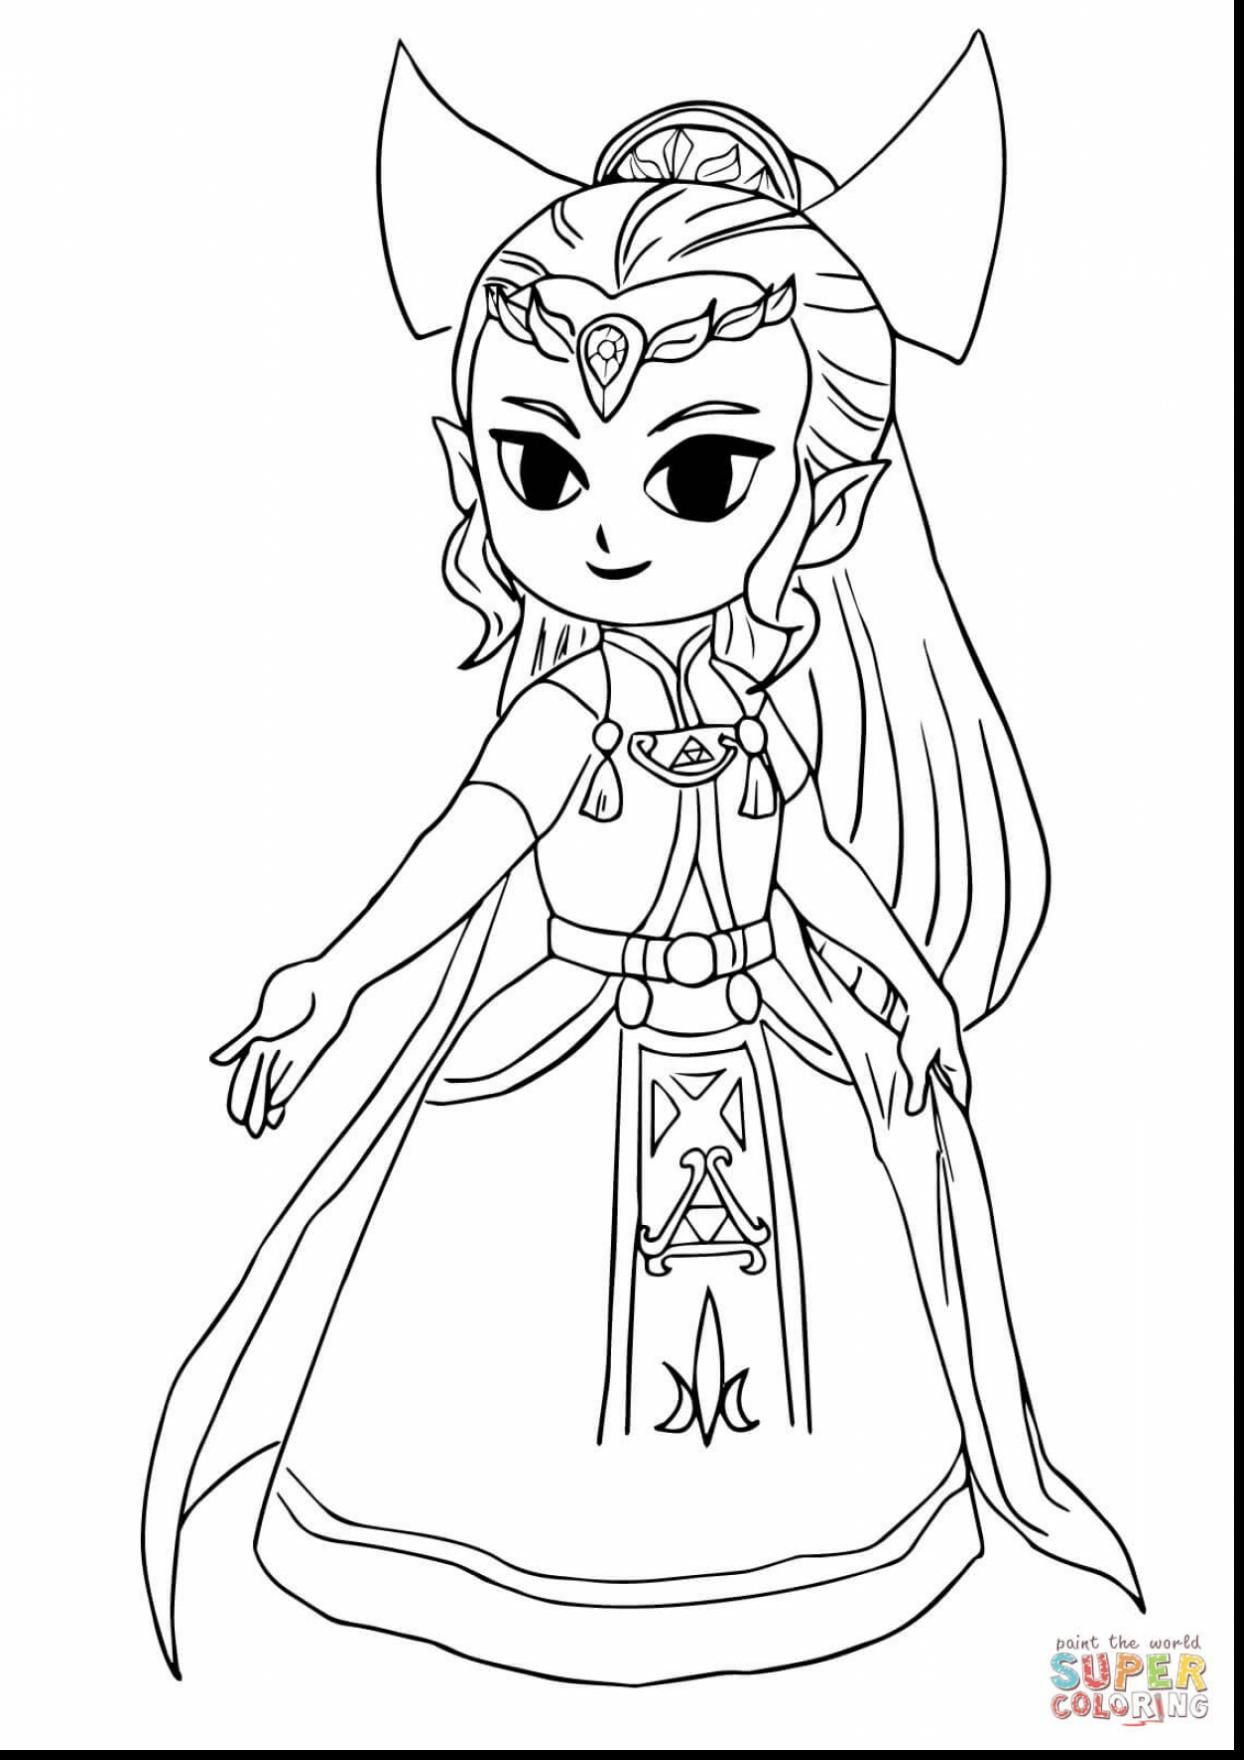 Legend-Of-Zelda-Coloring-Pages (49).jpg (1244×1760) | Therapeutic ...